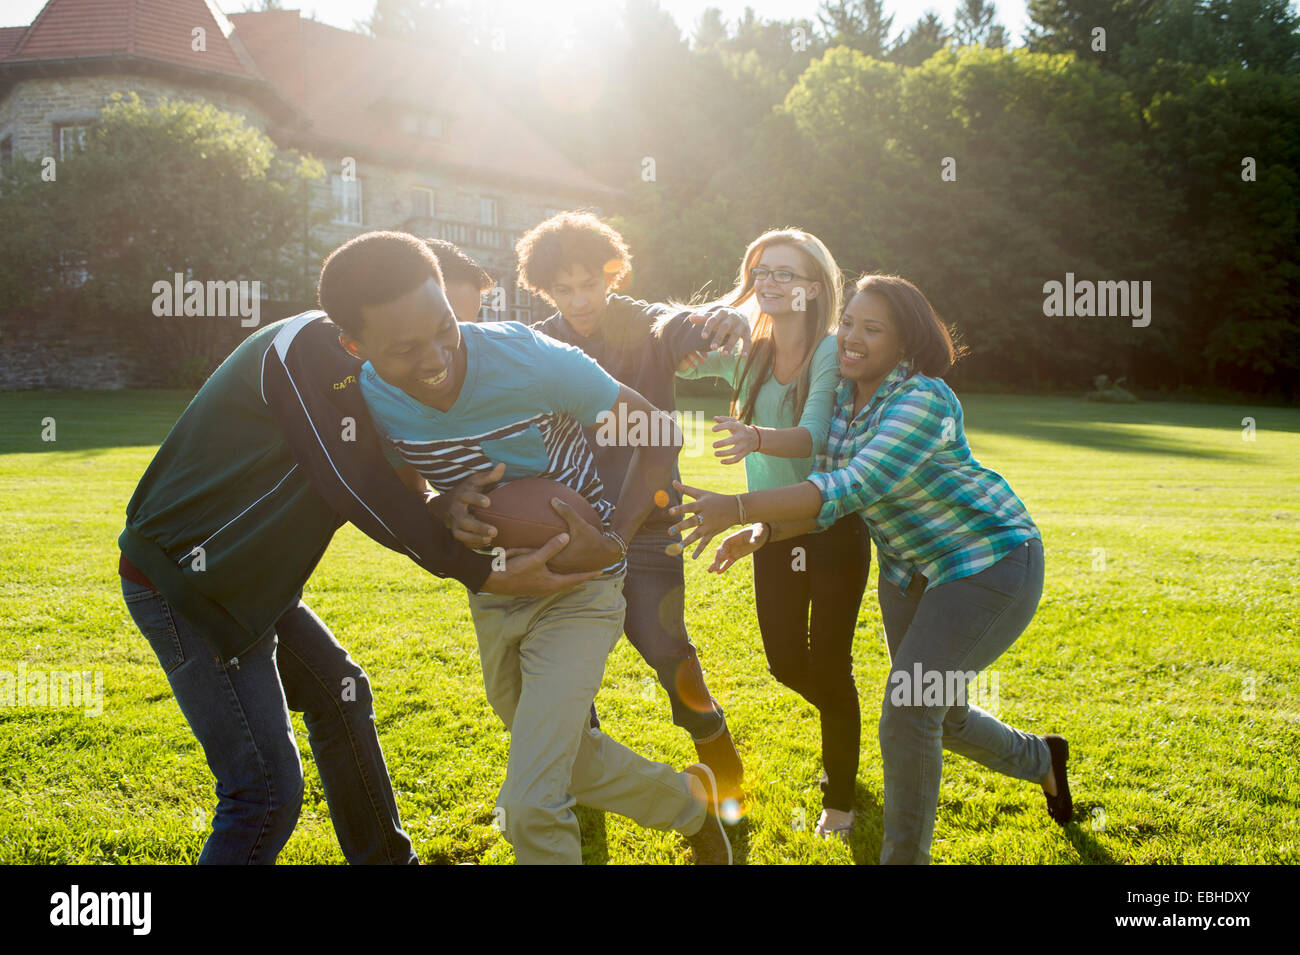 Students playing American football - Stock Image